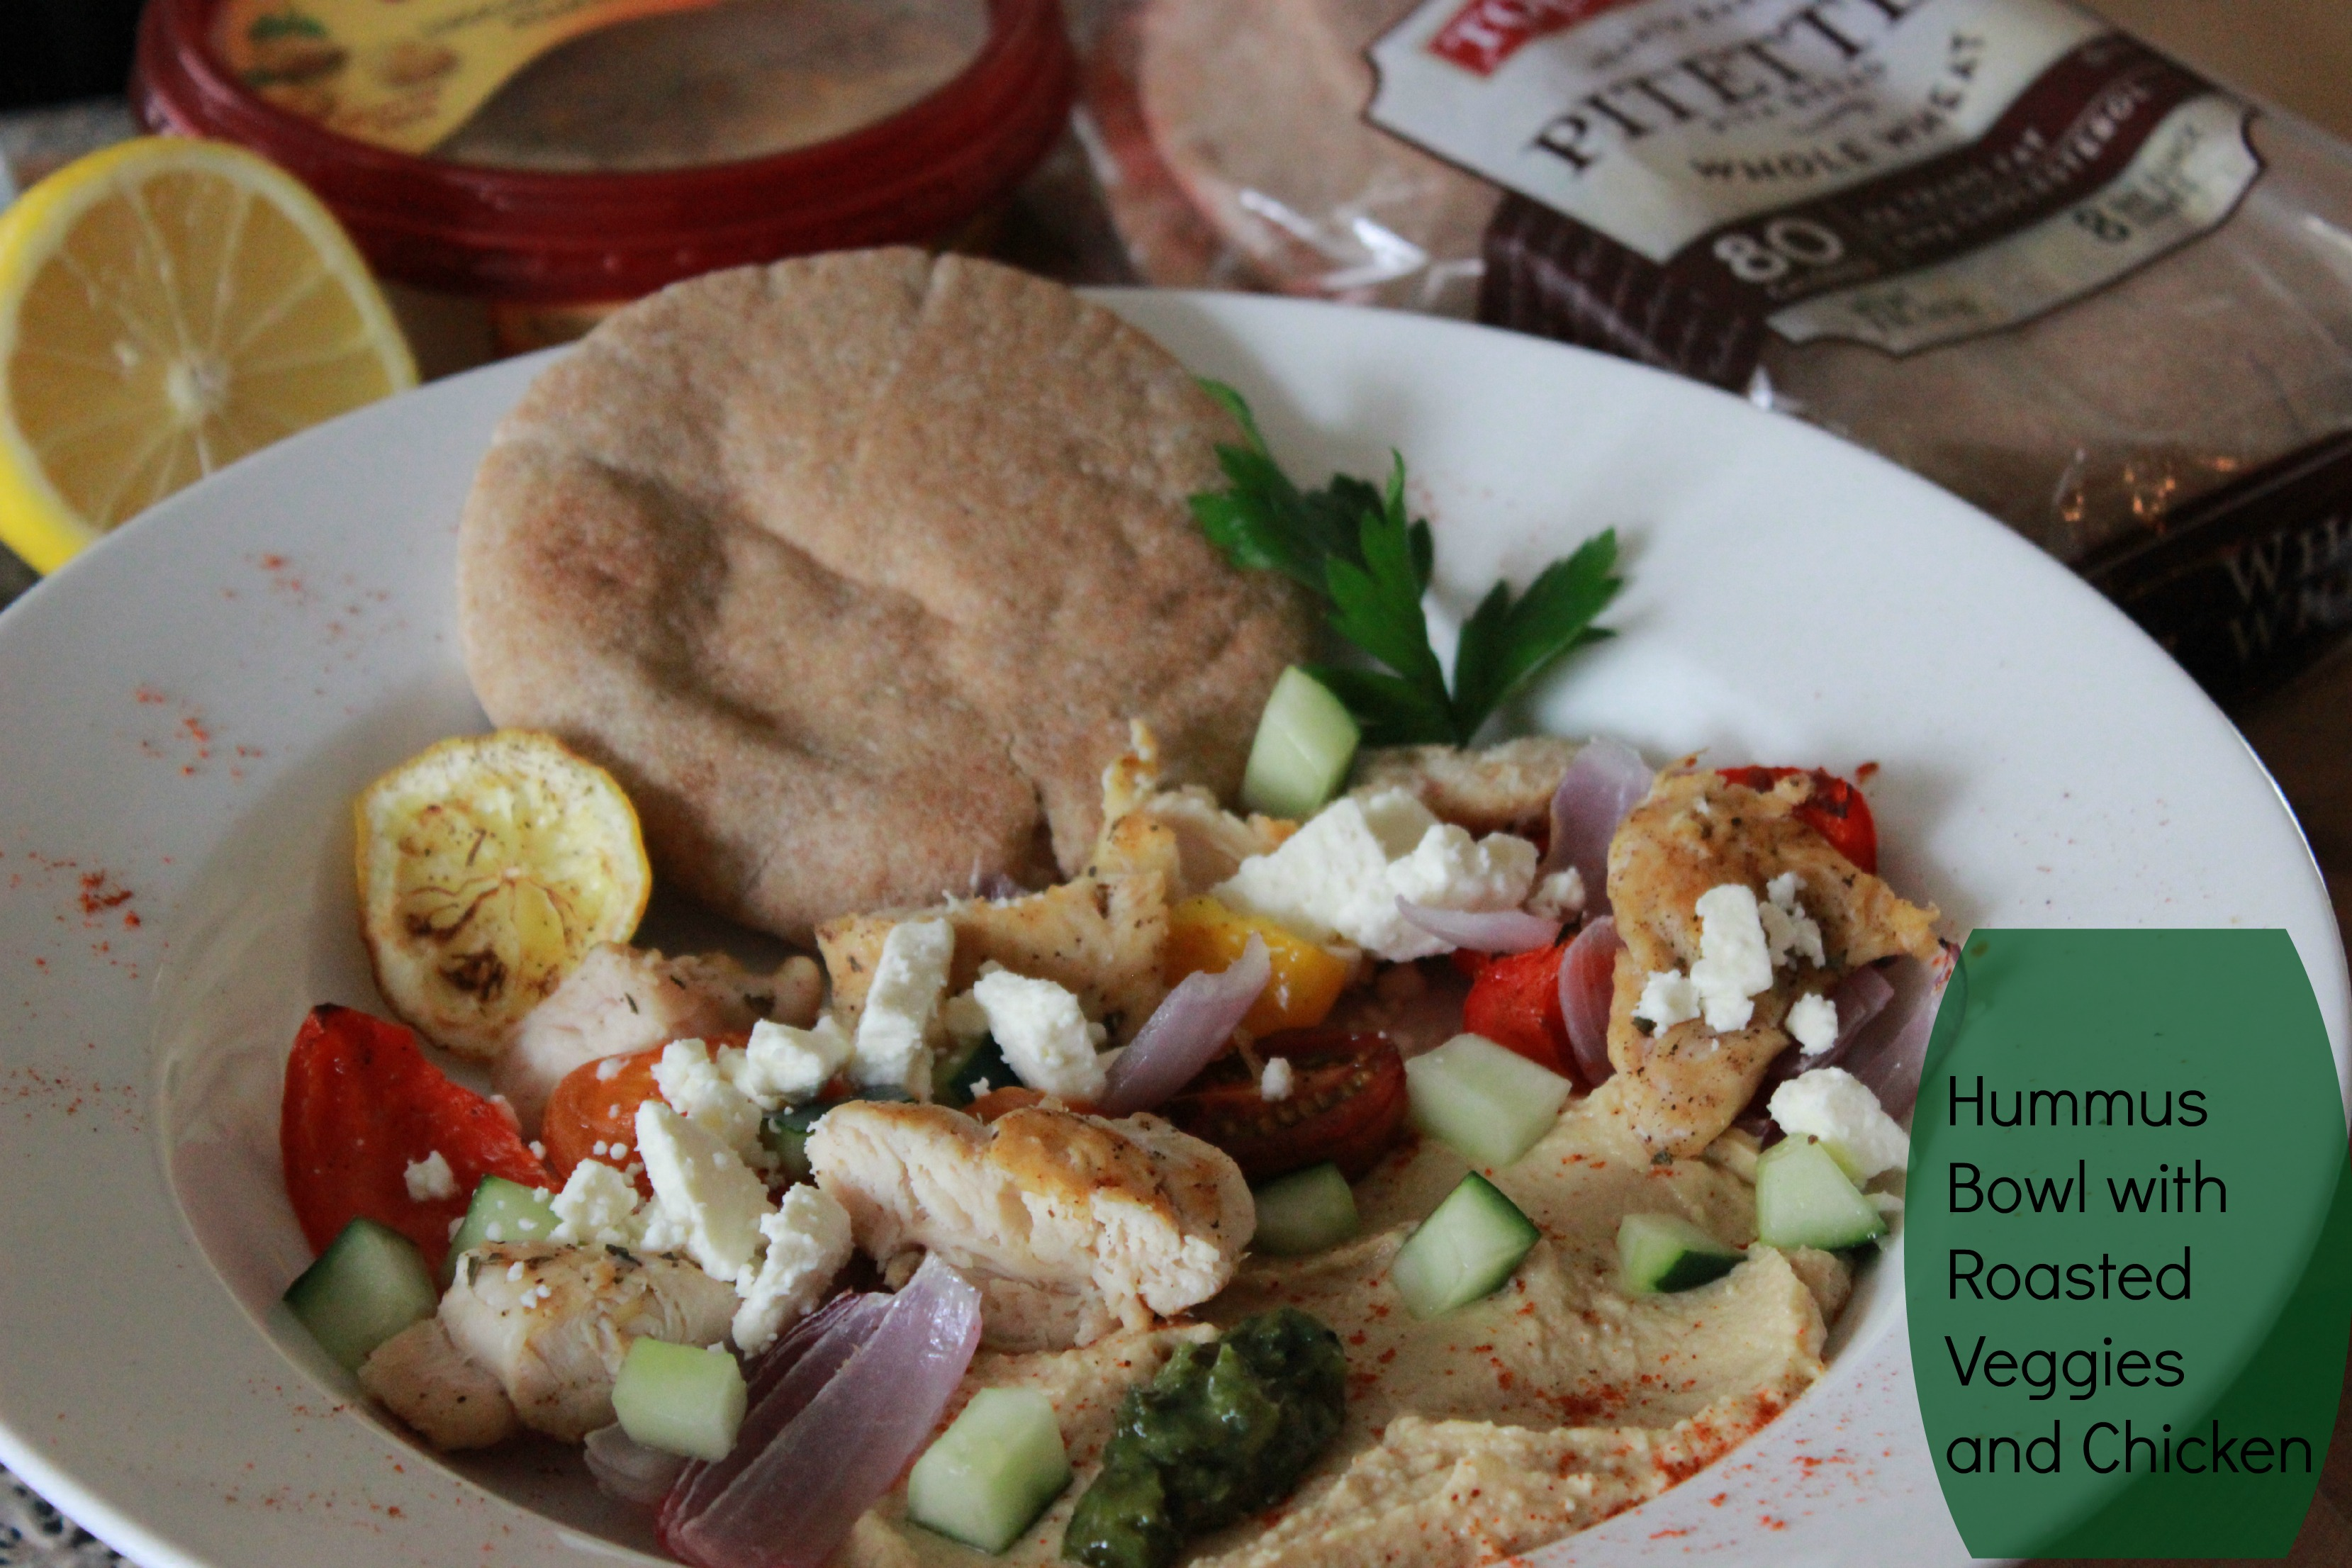 Sabra Hummus Bowl with Chicken, Feta and Roasted Veggies